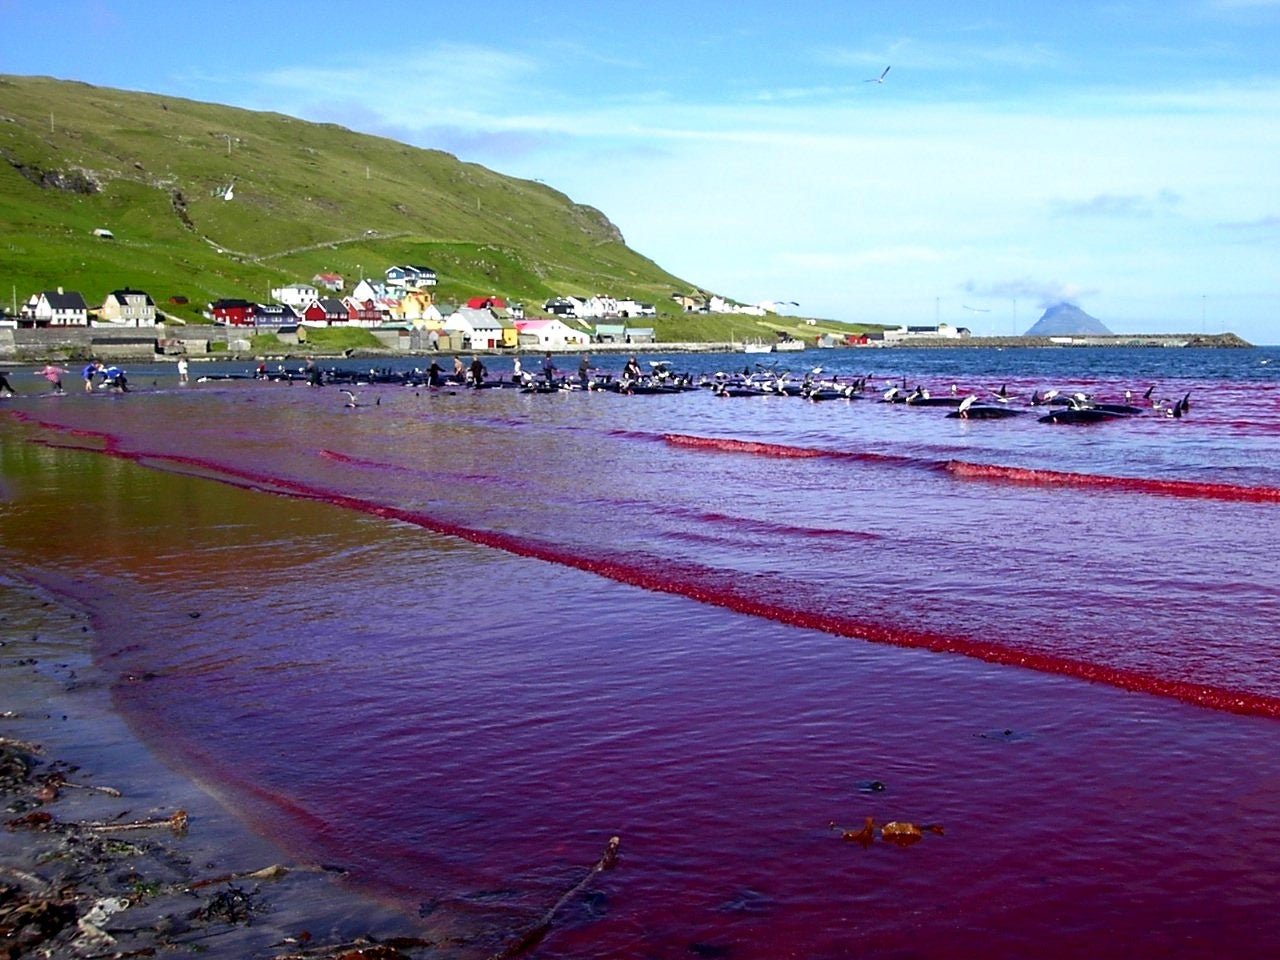 Whale hunt In Faroe Islands Turns Sea Red With Blood After Yearly Slaughter